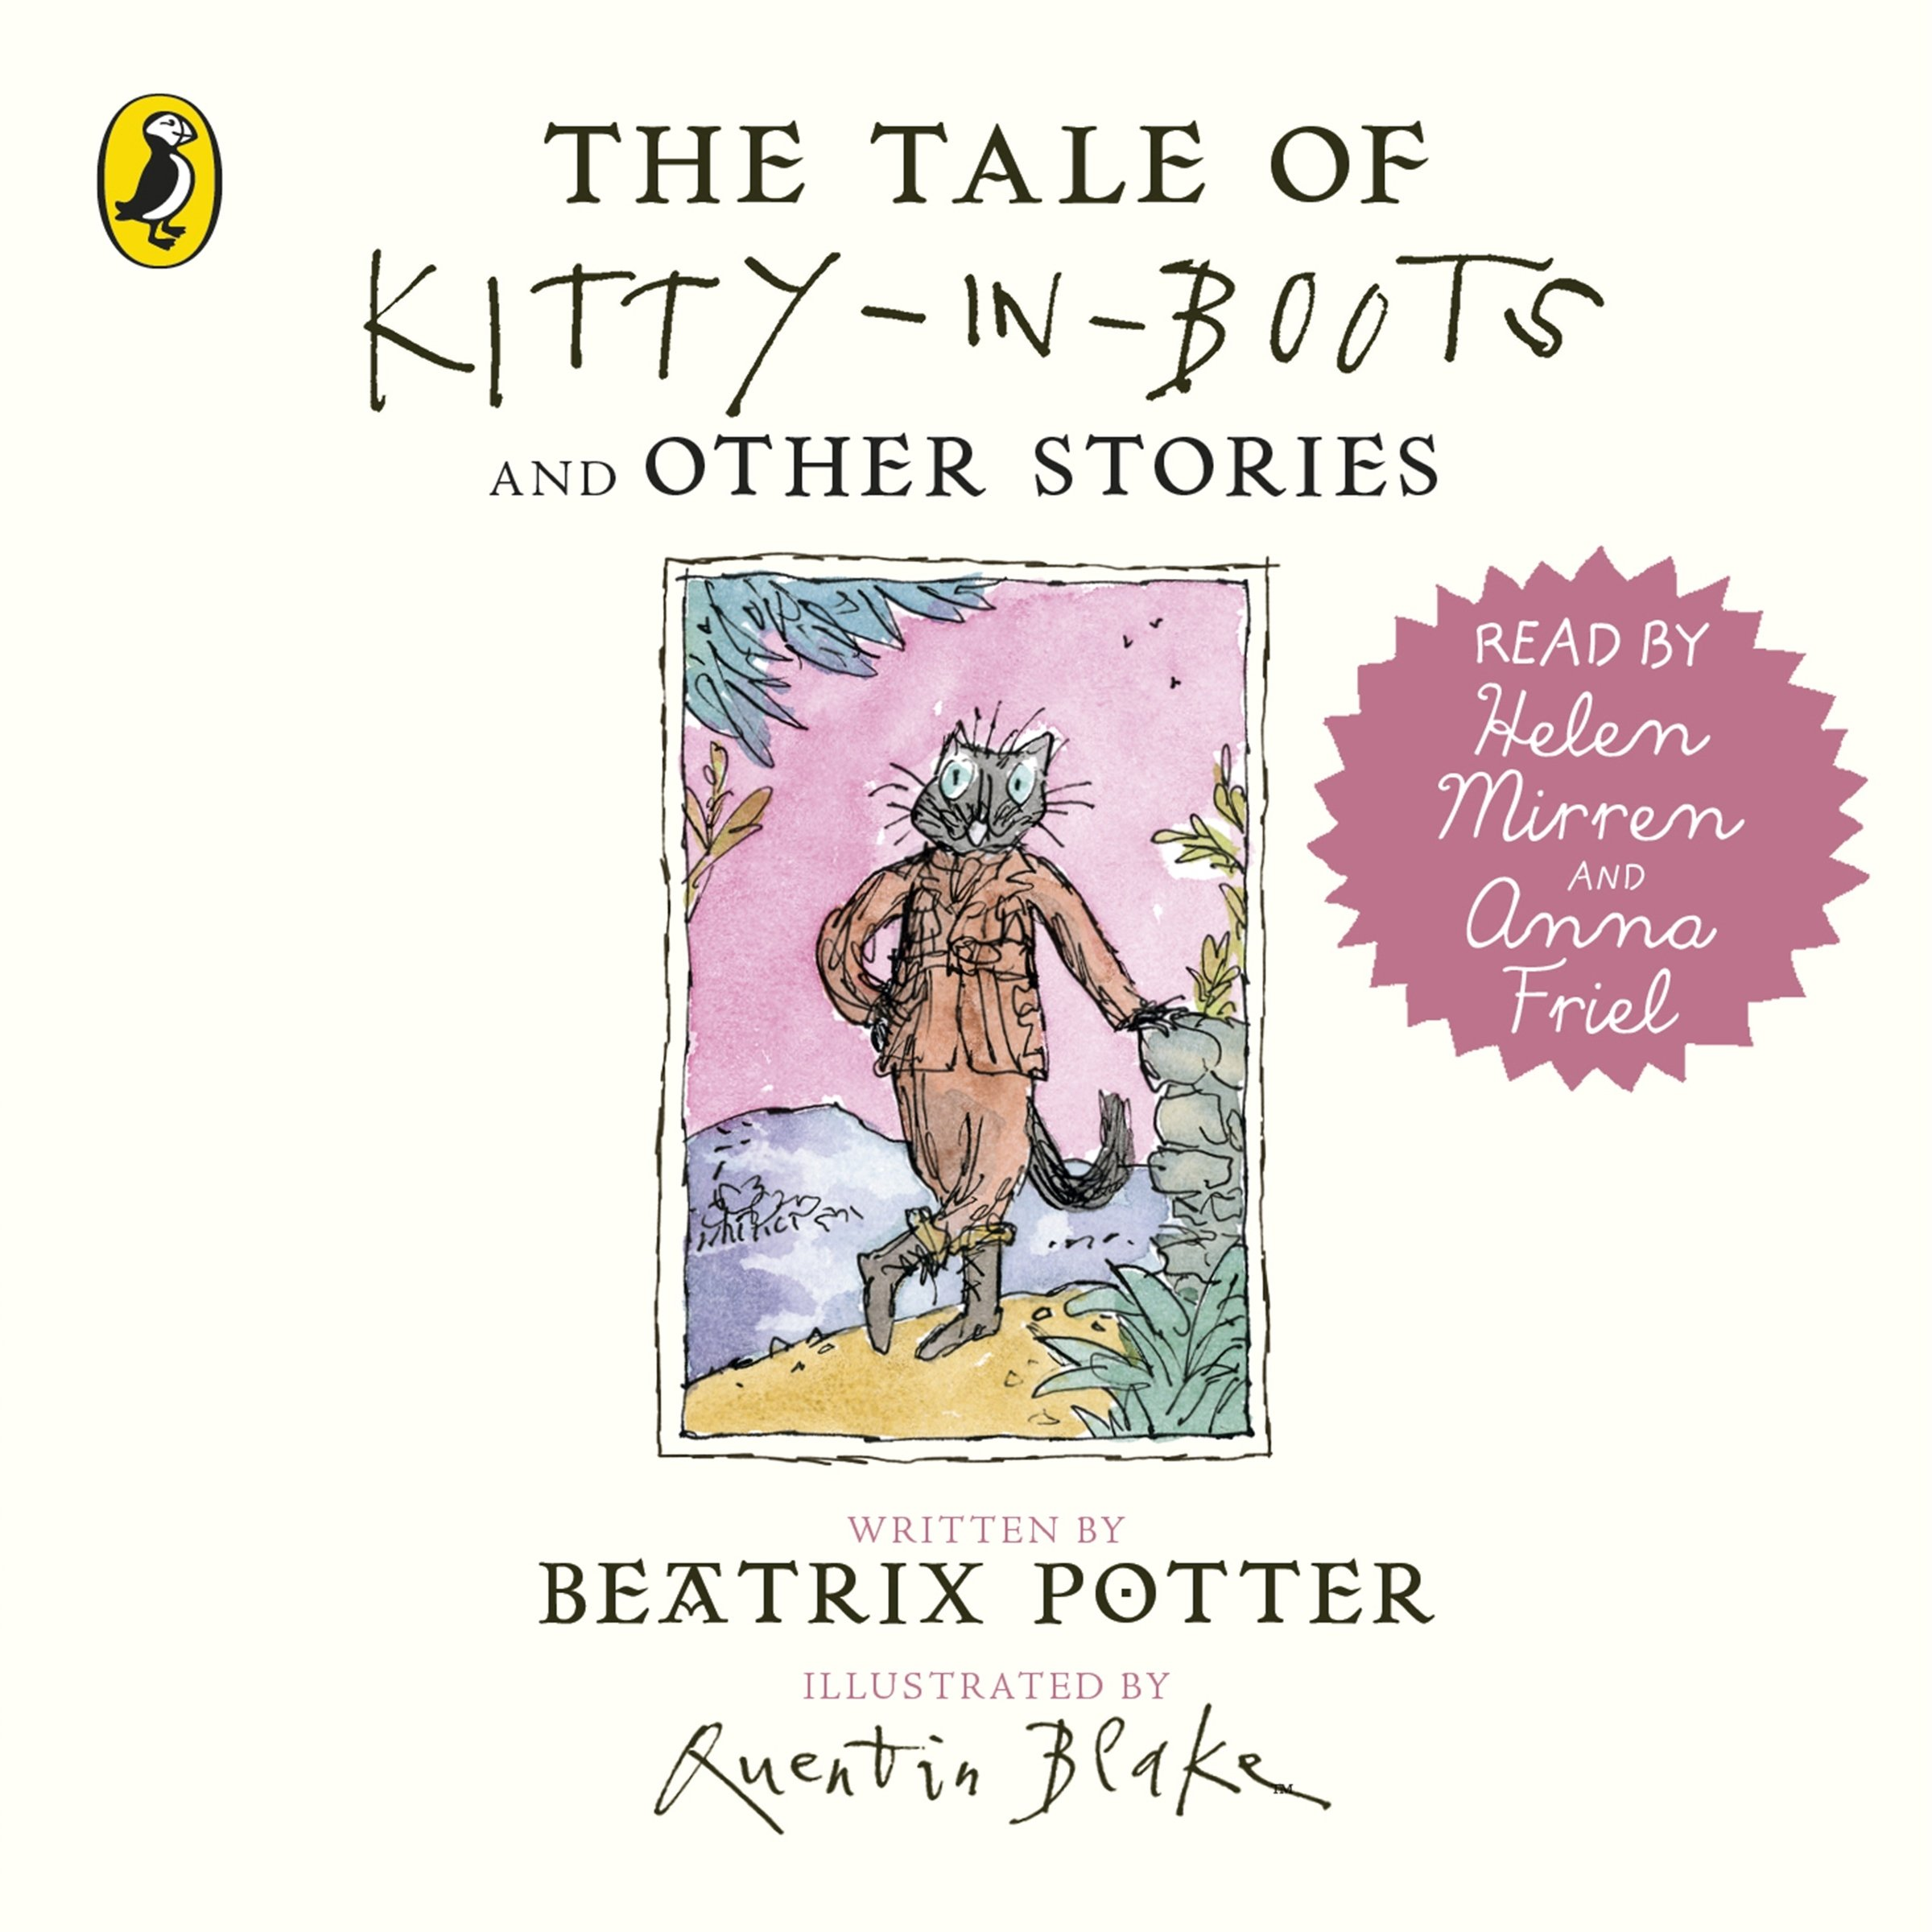 The Tale of Kitty-in-Boots and Other Stories